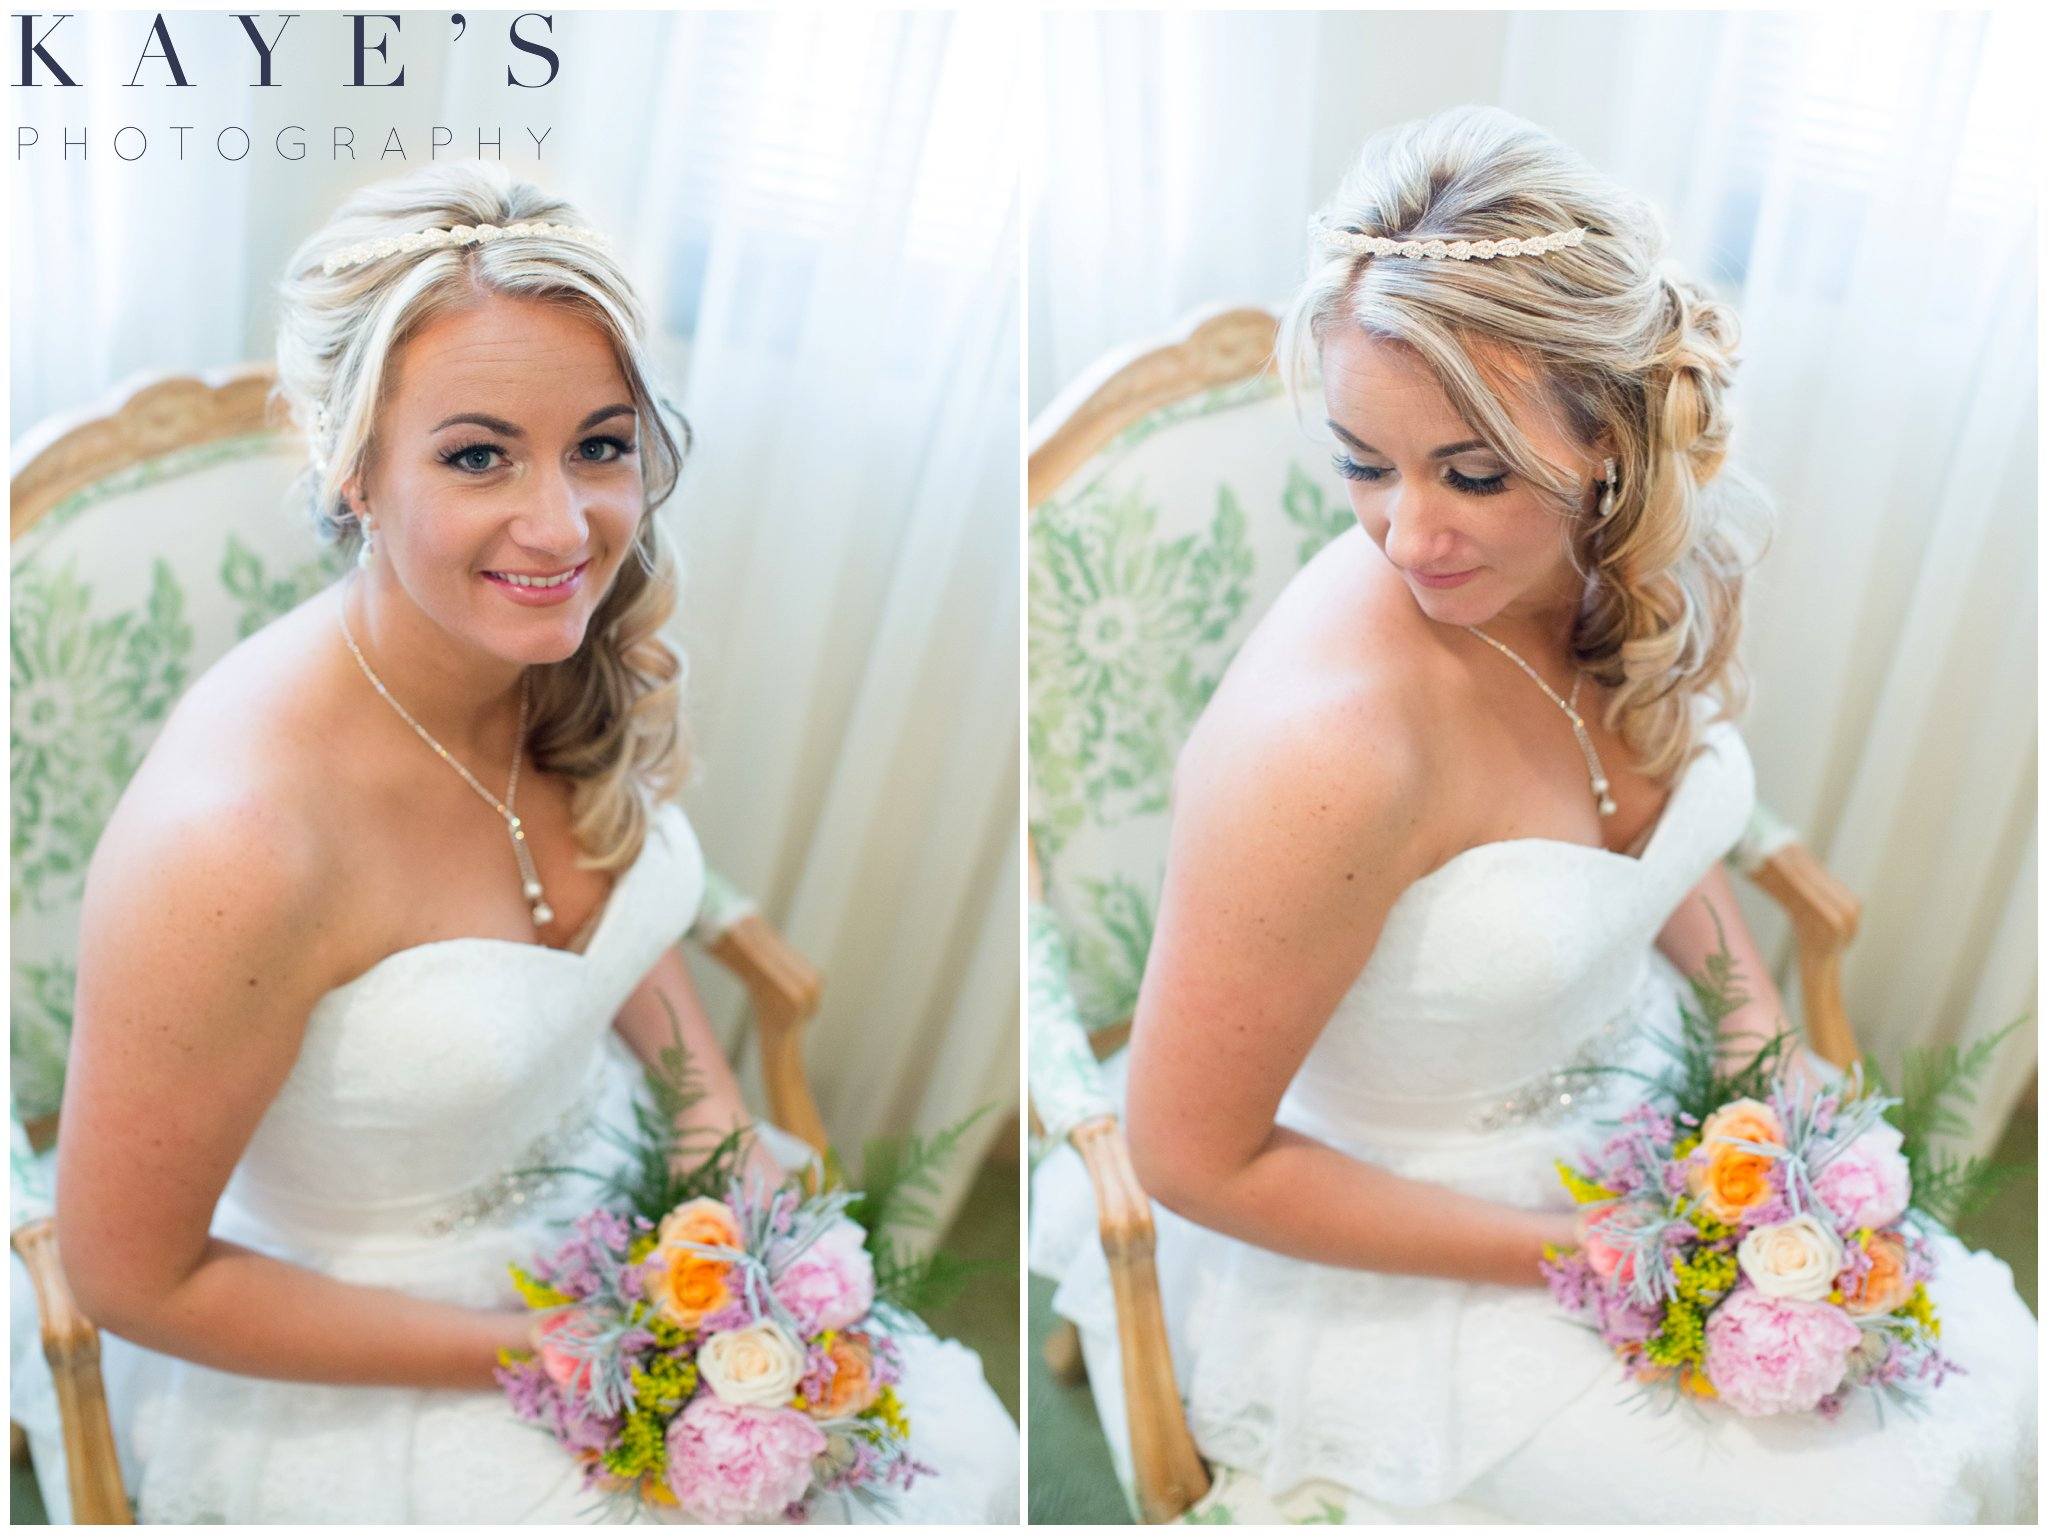 grand blanc wedding portraits, grand blanc wedding photos, grand blanc wedding photo, bride in dress, bride in chair, bride with flowers